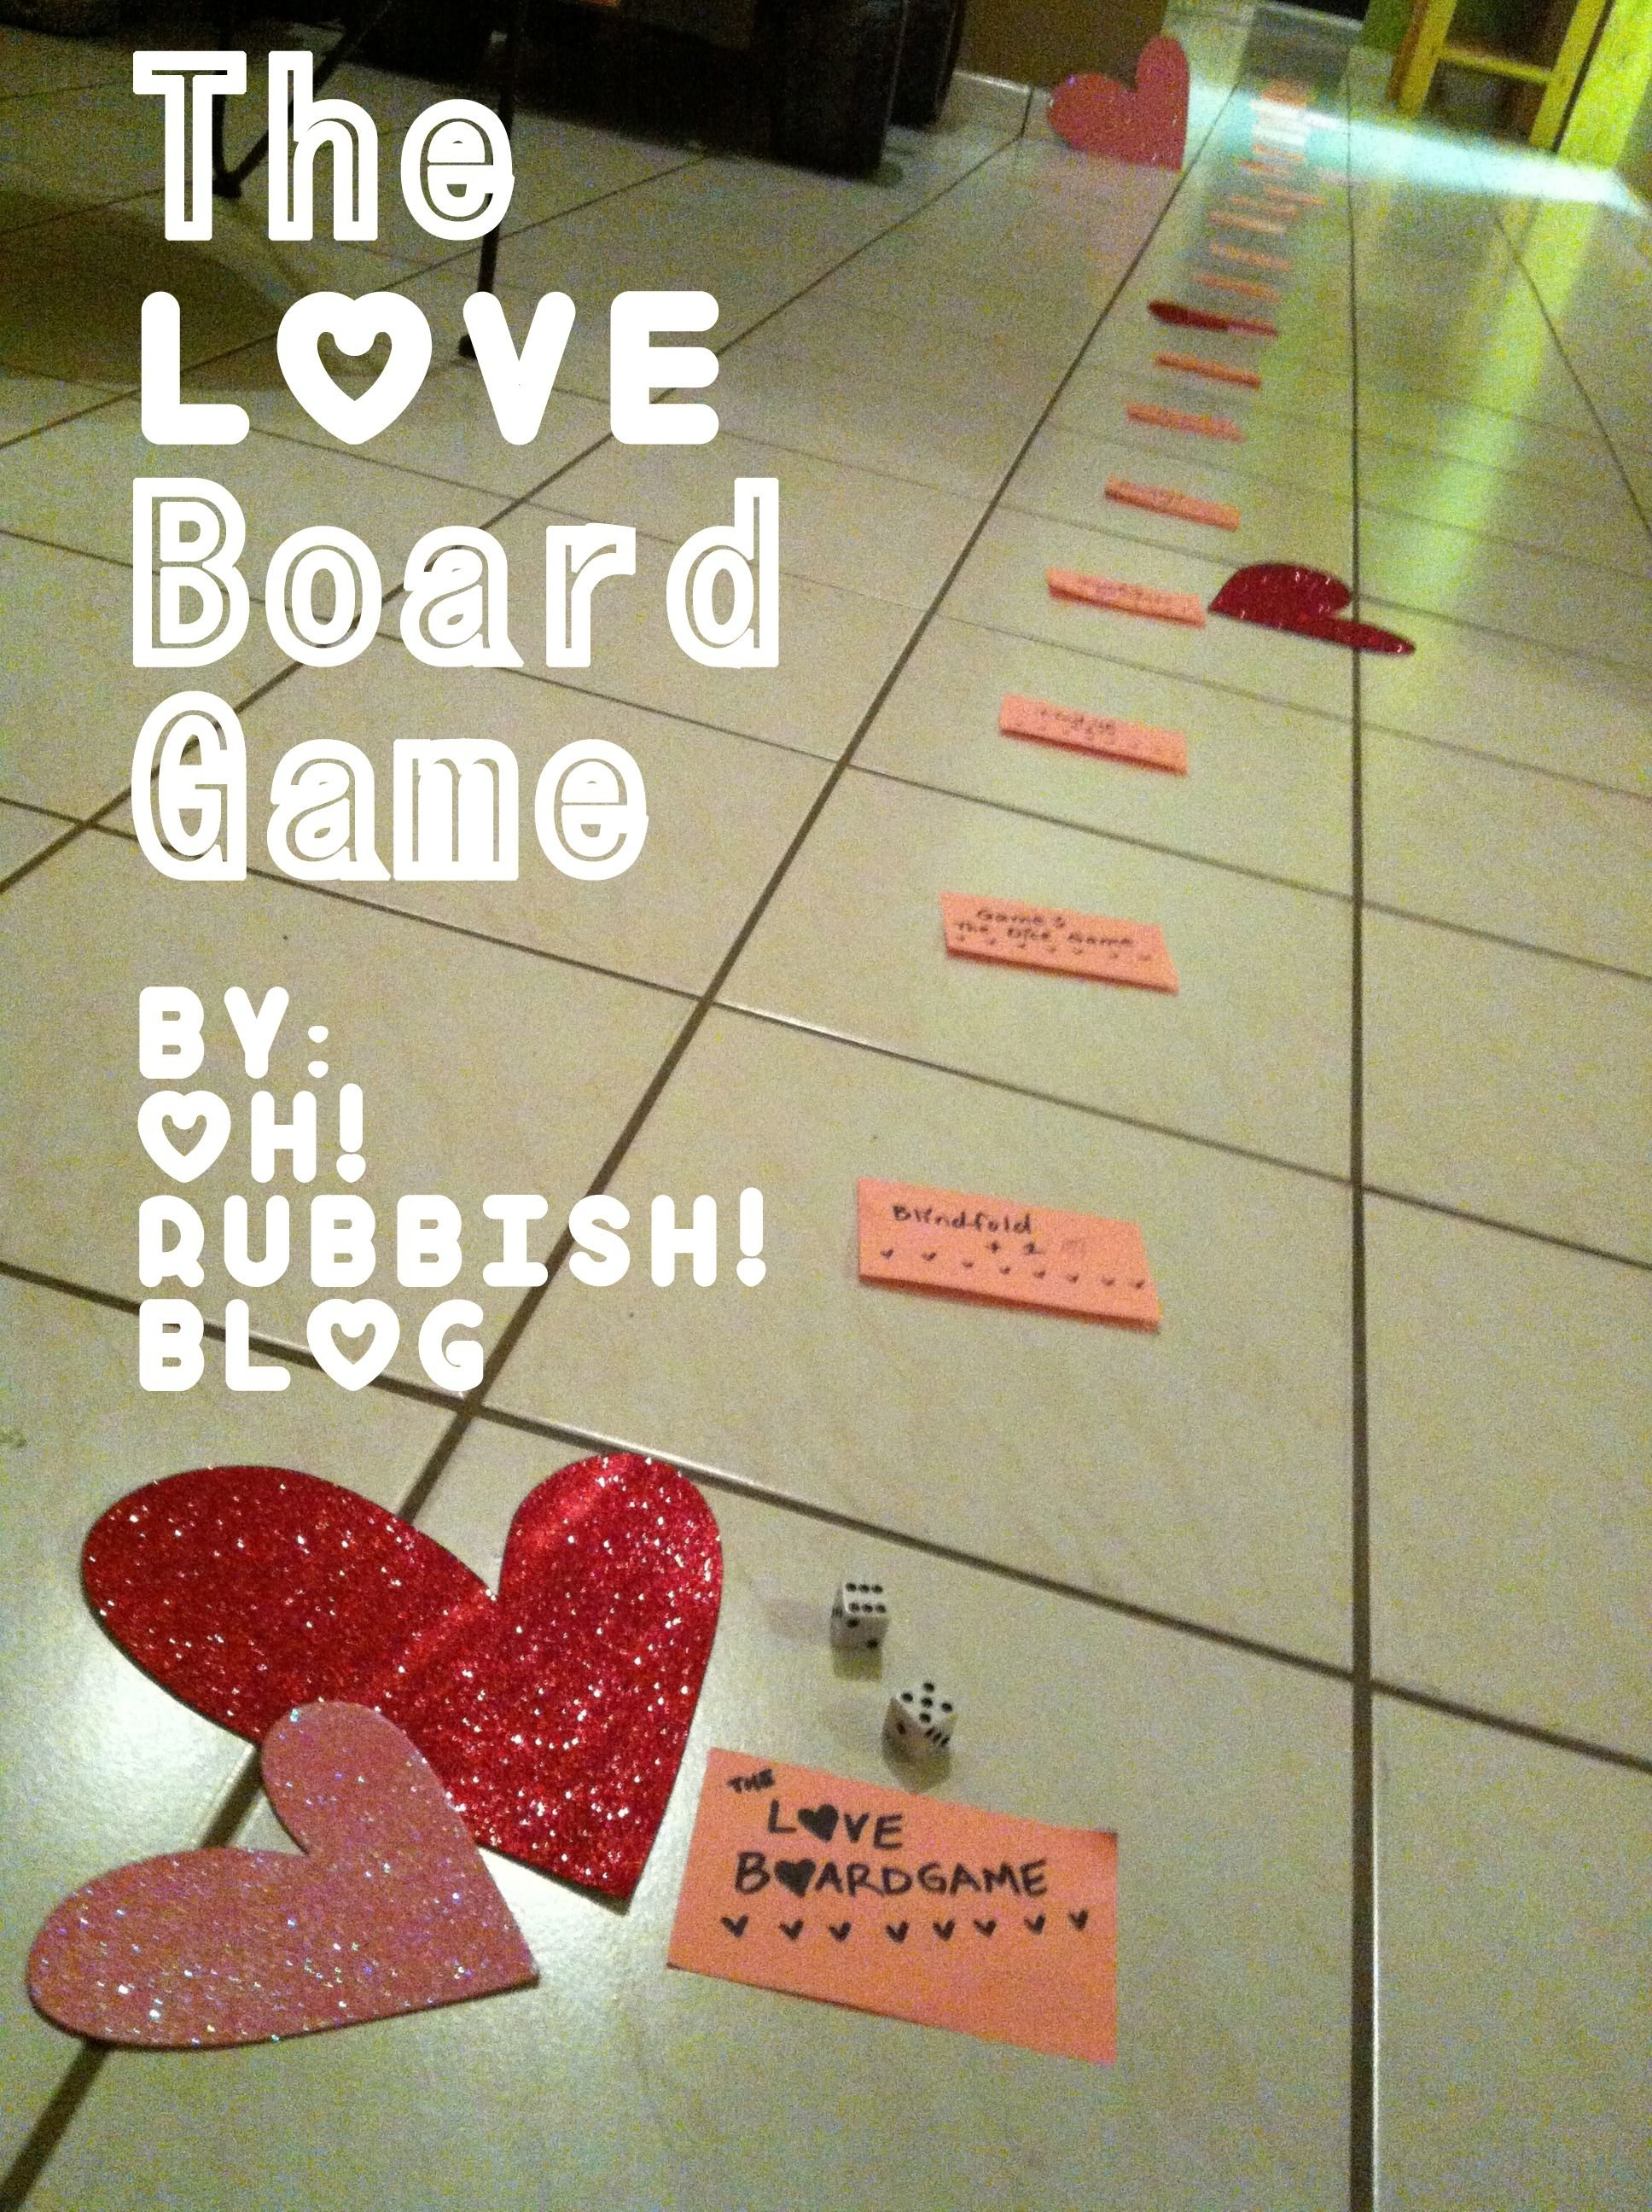 10 Nice Valentines Day Ideas For New Couples the love board game valentine game for couples valentine day 10 2021